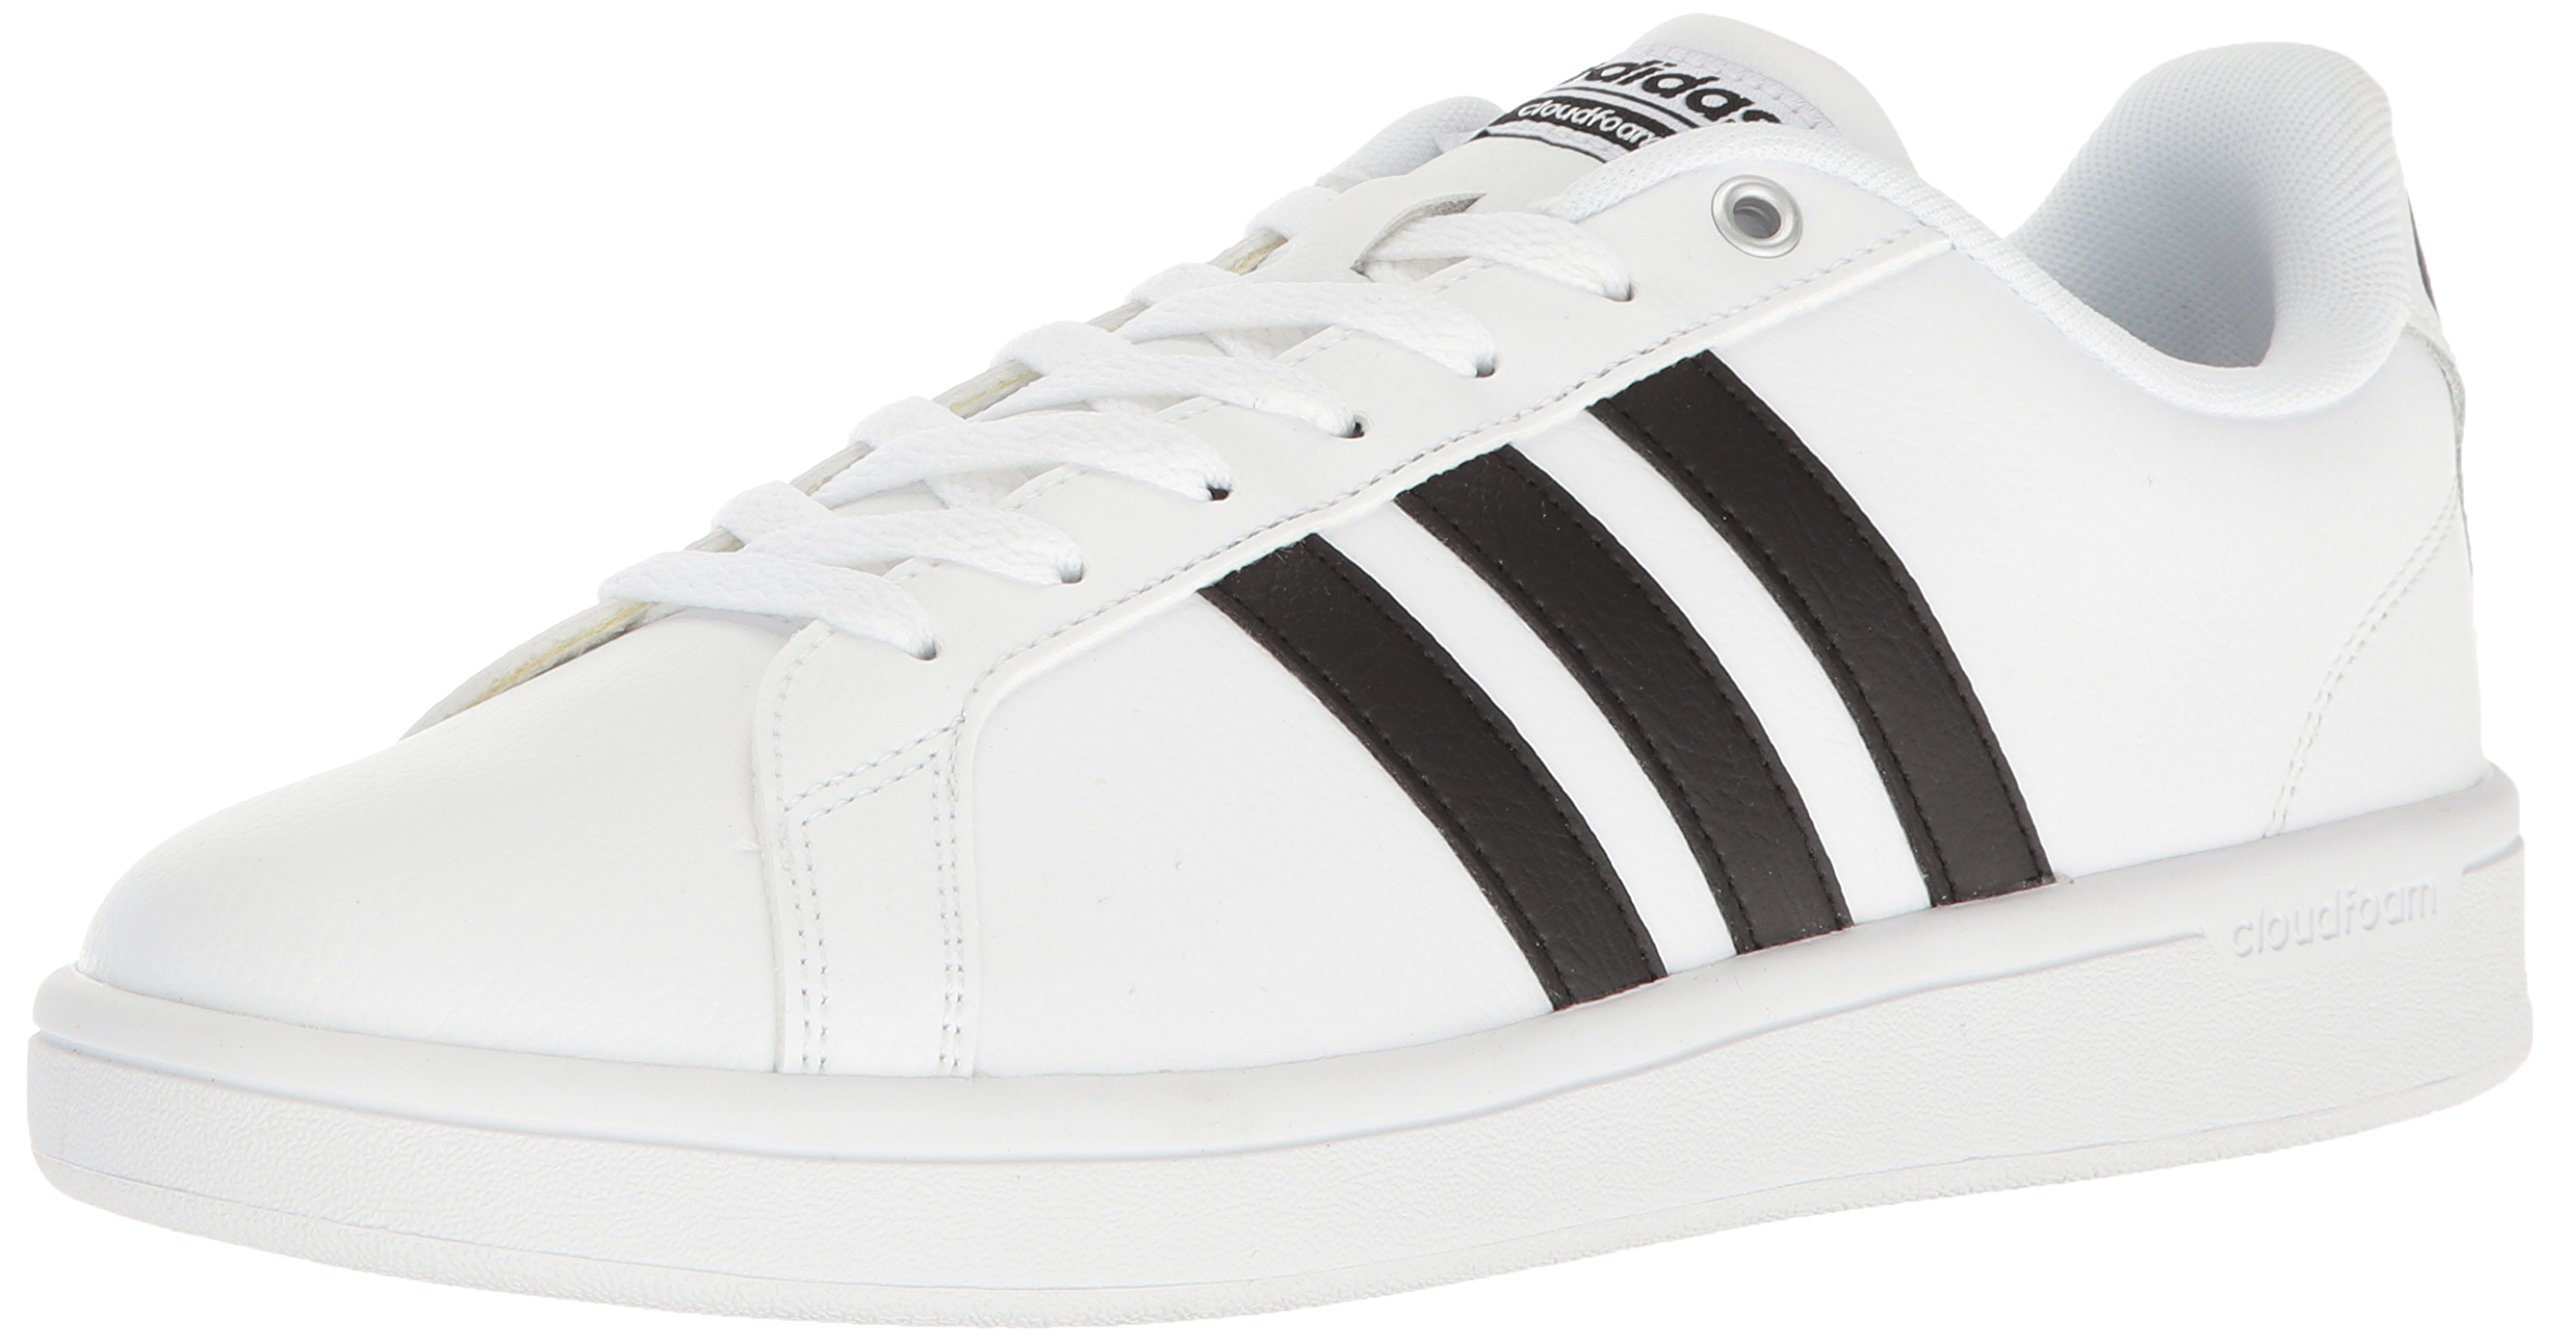 adidas Men's Cloudfoam Advantage Sneakers, White/Black/White, (9.5 M US)